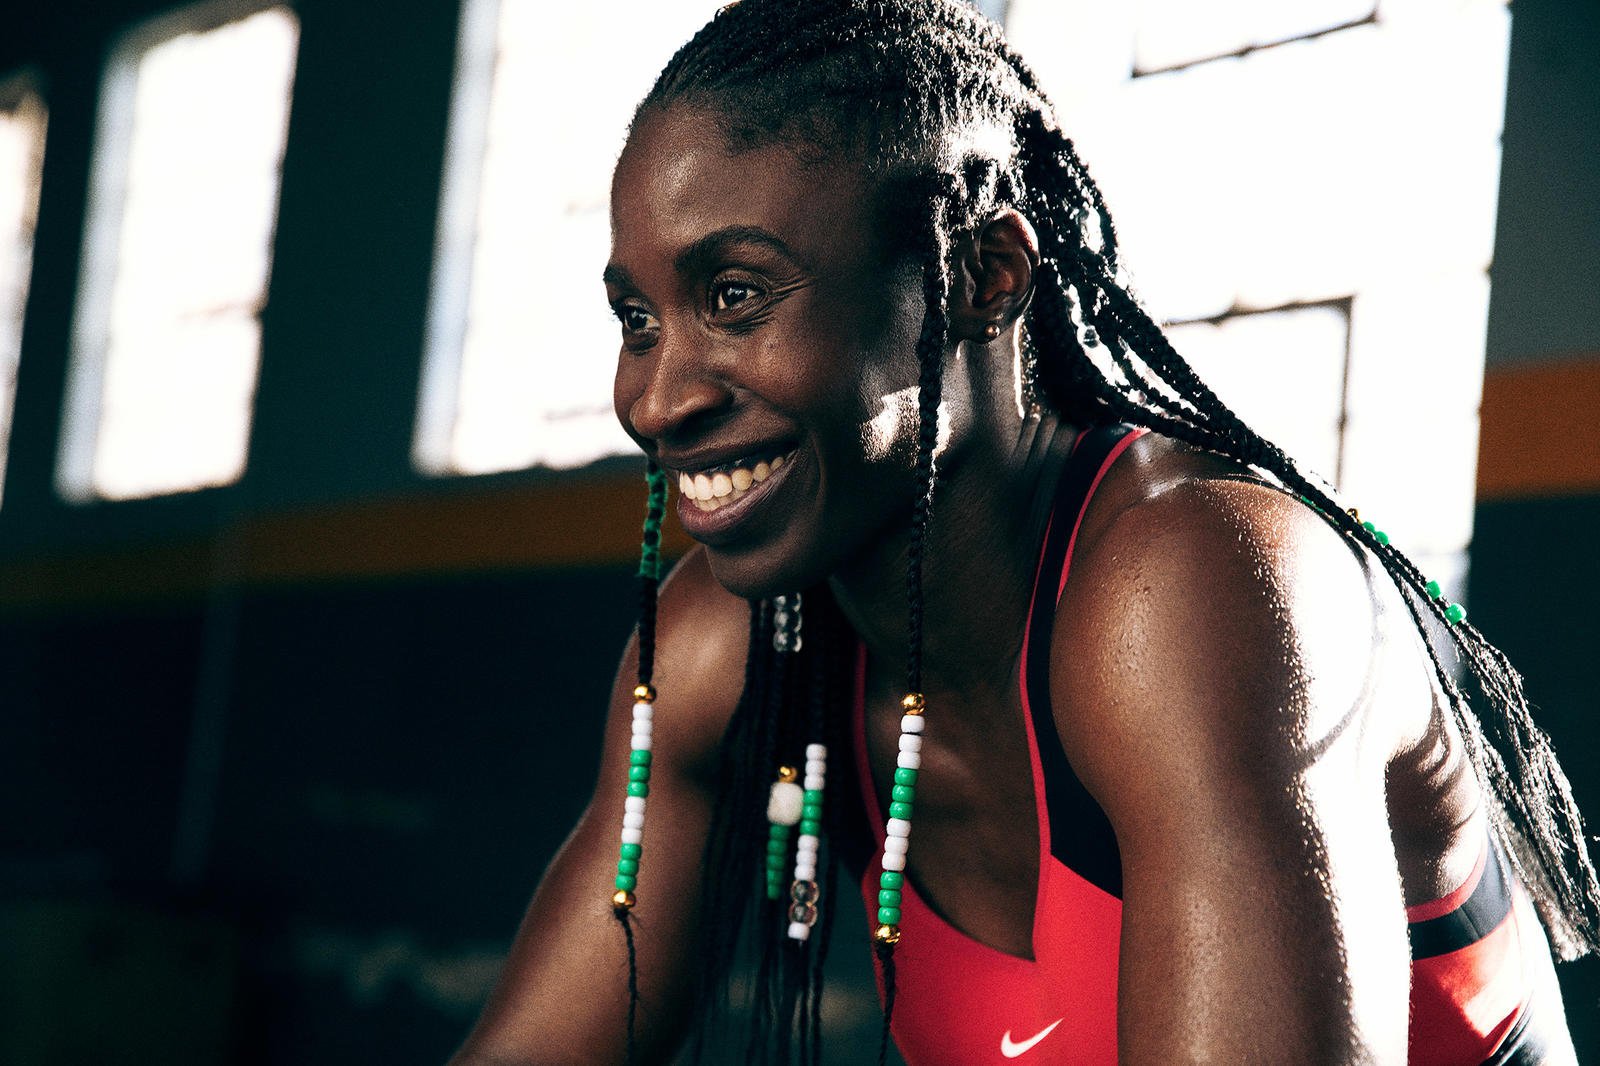 Nigerian Bobsled star Simi Adeagbo set for another milestone